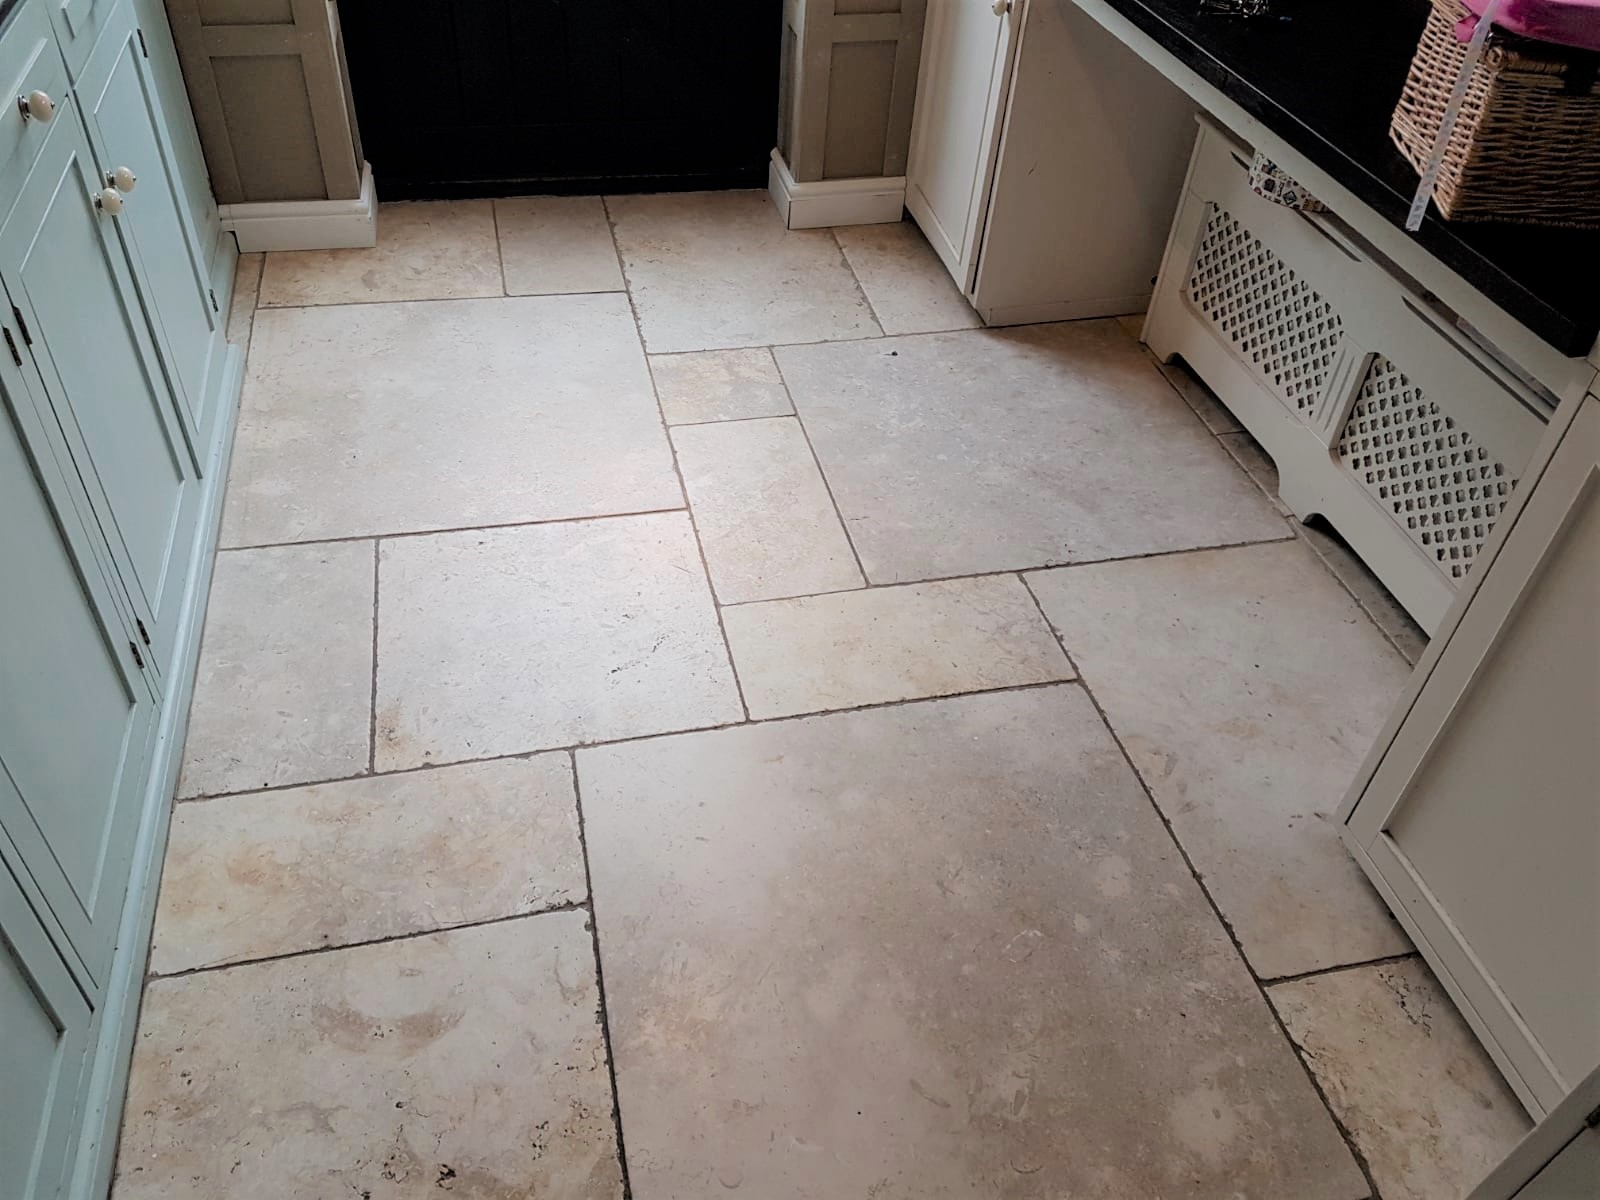 Limestone Tiled Kitchen Floor Before Cleaning Knotty Green